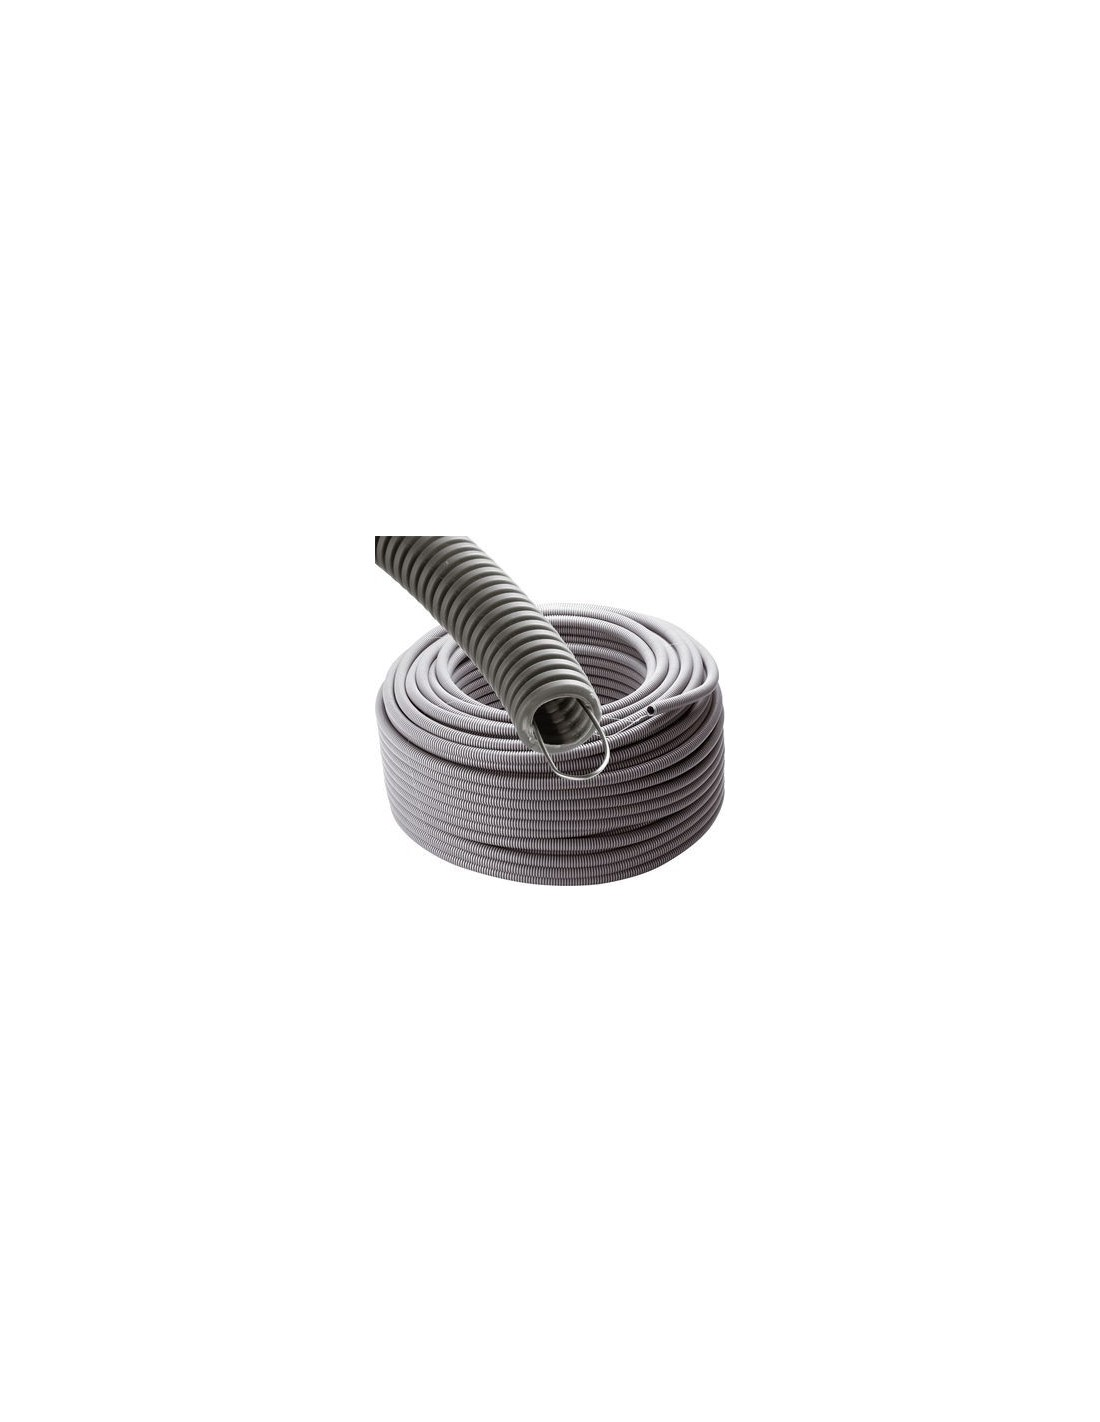 Gaine icta 3422 en diam tre 20 mm couronne de 100m - Gaine icta 20 ...